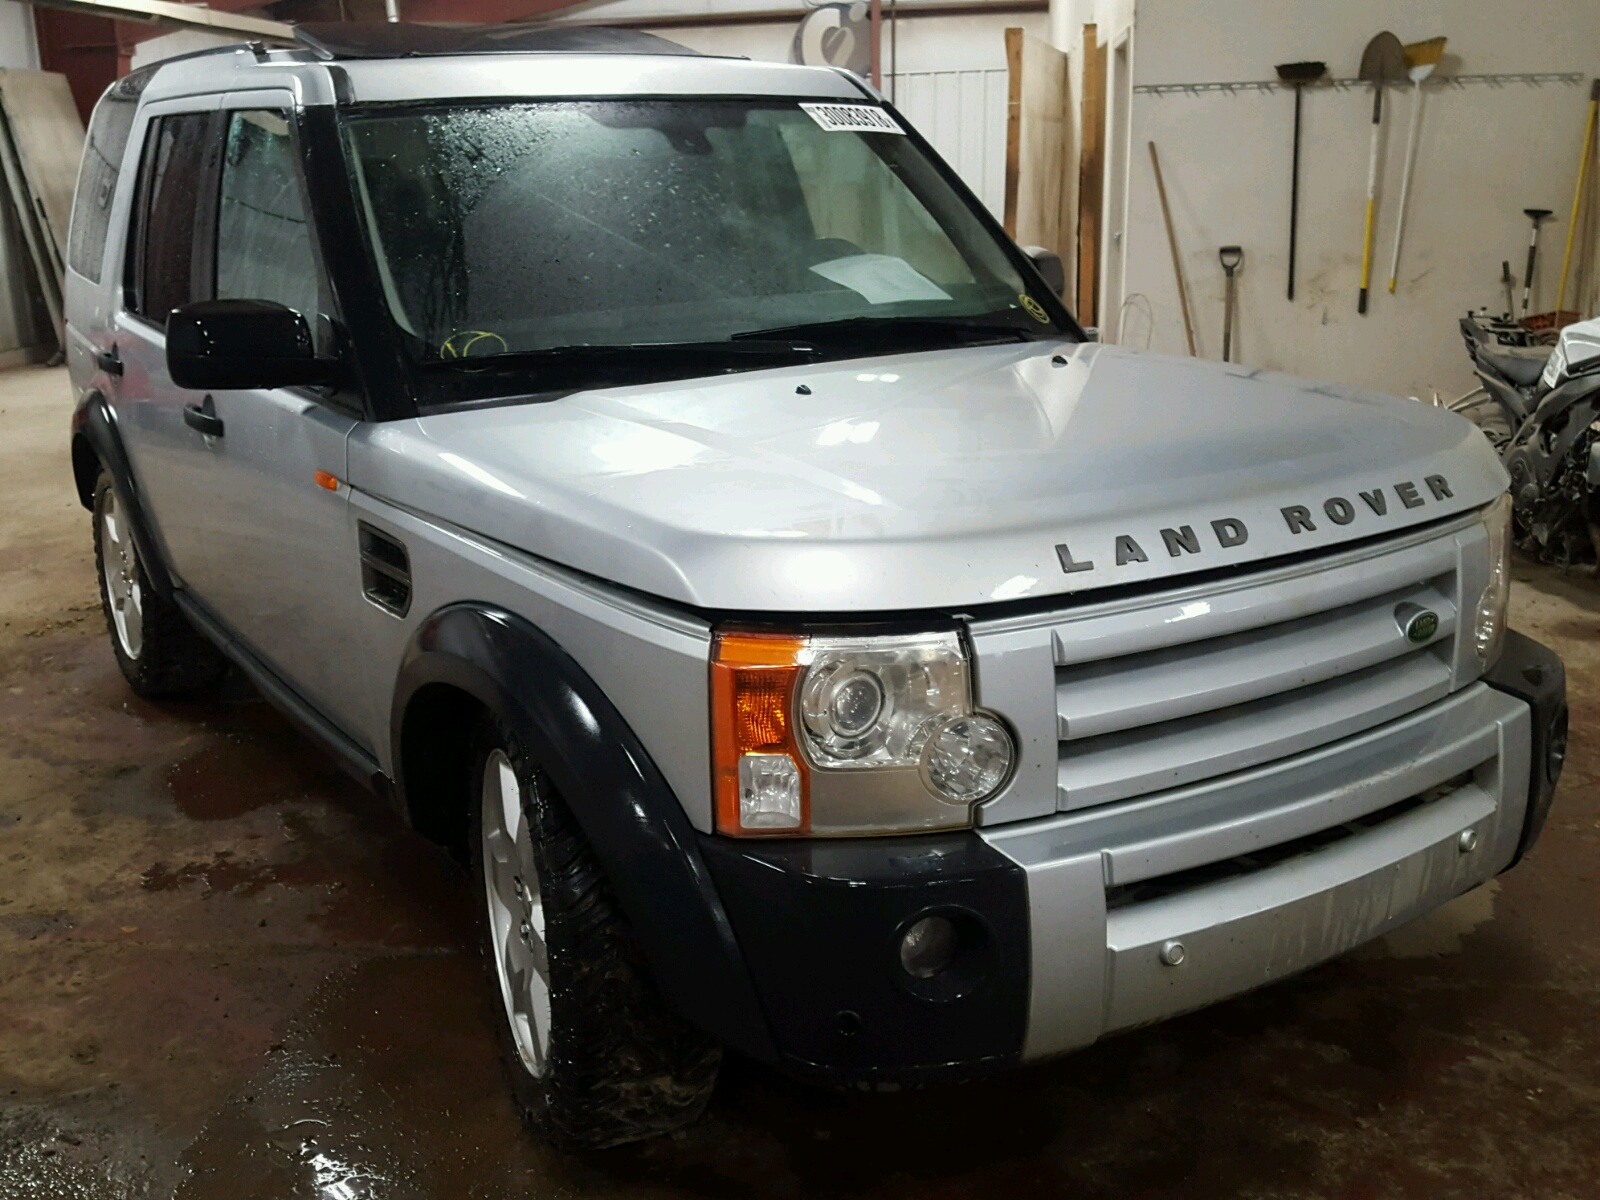 sale title auto lot for in auctions carfinder vehicle on flood en copart cert hse mi gray online landrover of lansing land se rover